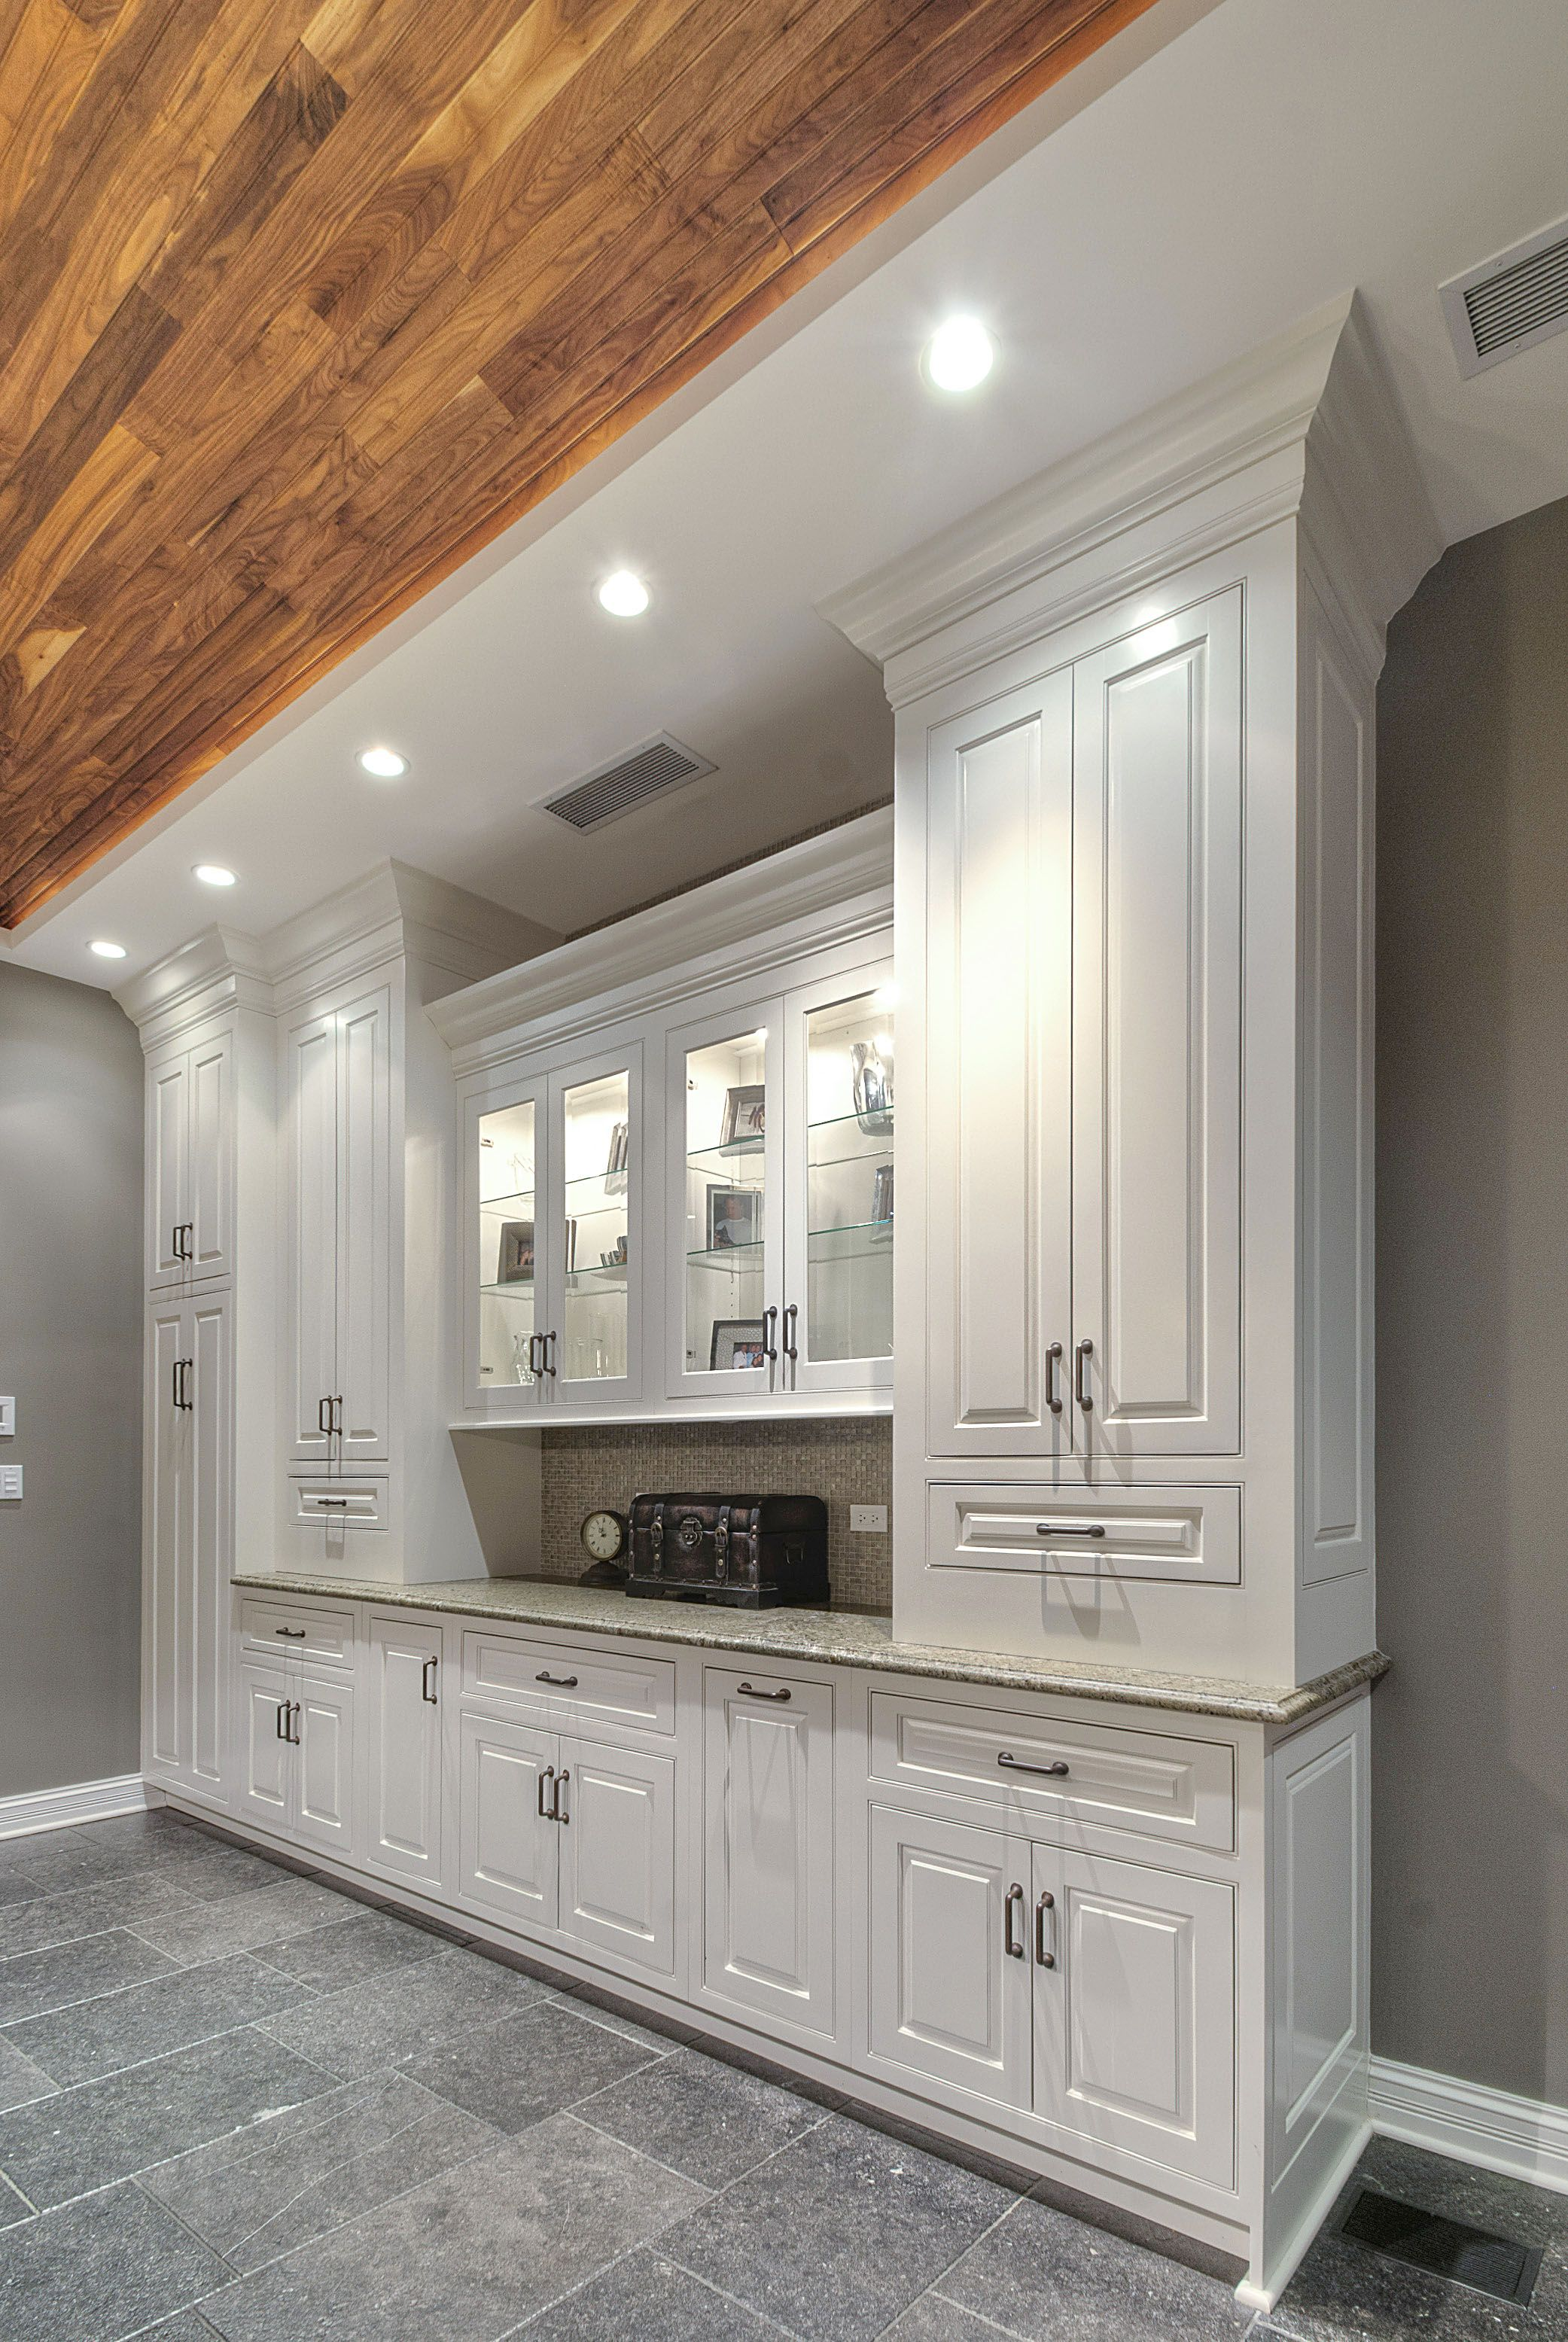 Image Top Of Cabinets Inset Christopher Pea Design Custom Kitchens